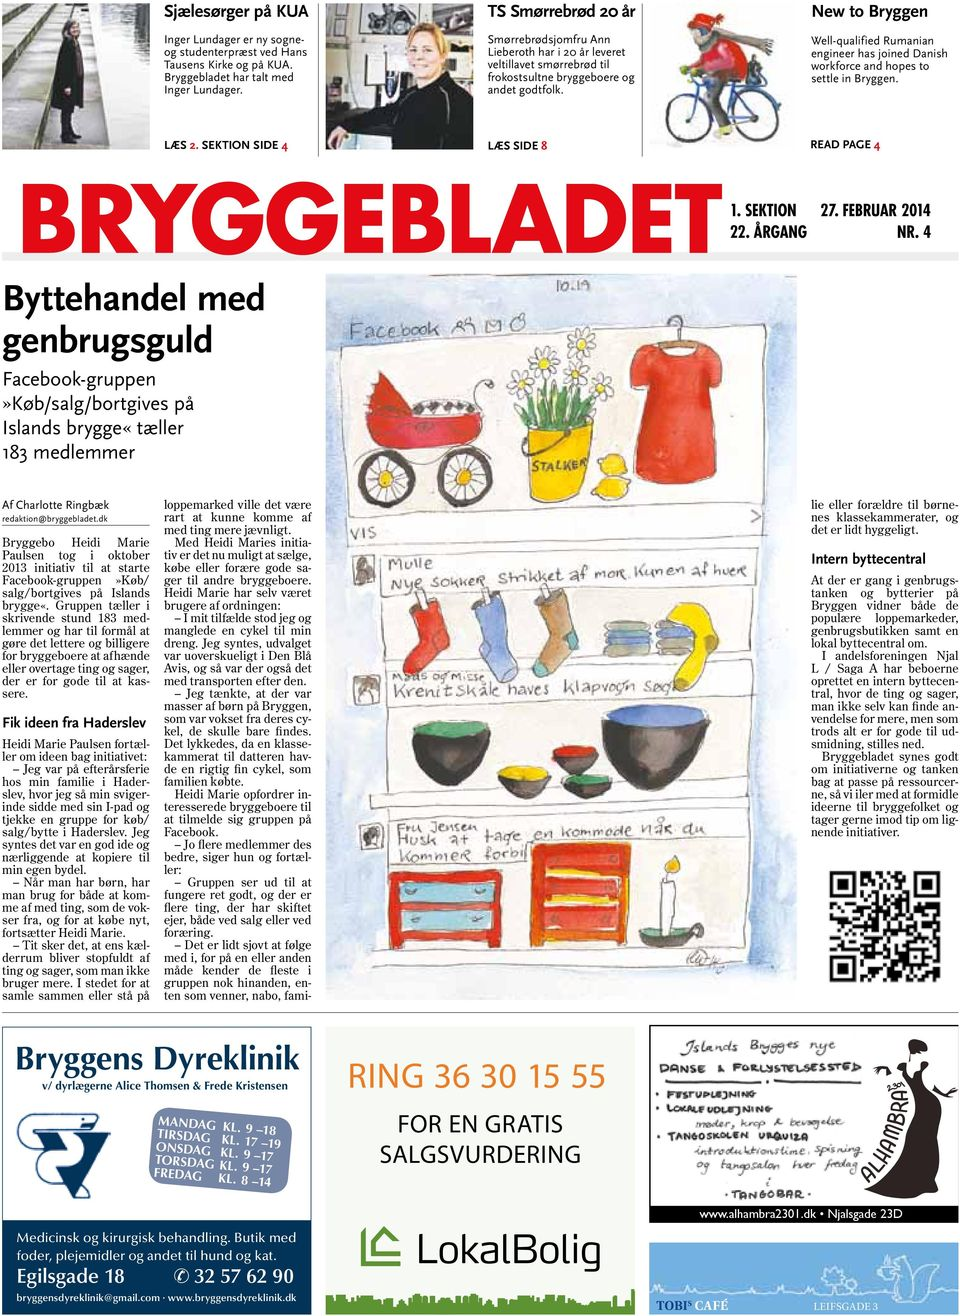 new to Bryggen Well-qualified Rumanian engineer has joined Danish workforce and hopes to settle in Bryggen. læs 2. SeKTiOn Side 4 læs Side 8 read PaGe 4 1. SeKTION 27. februar 2014 22. ÅrGaNG Nr.